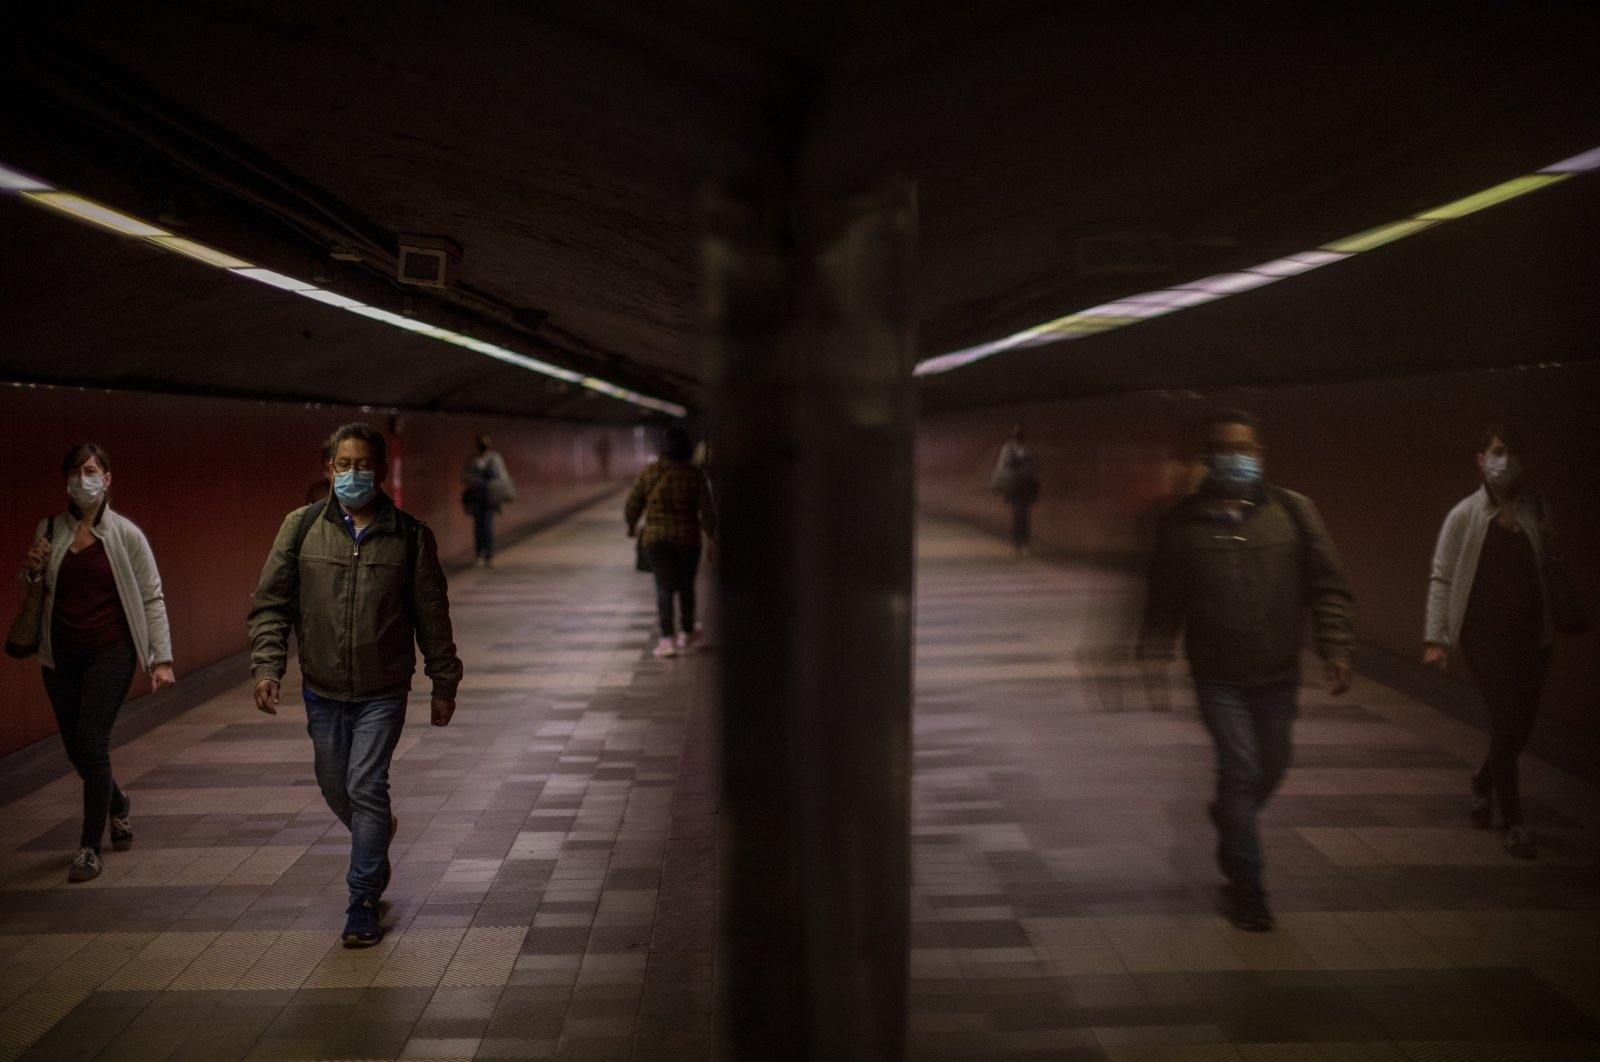 Passengers walk along a tunnel connecting platforms in a metro station in Barcelona, Spain, April 15, 2020. (AP Photo)